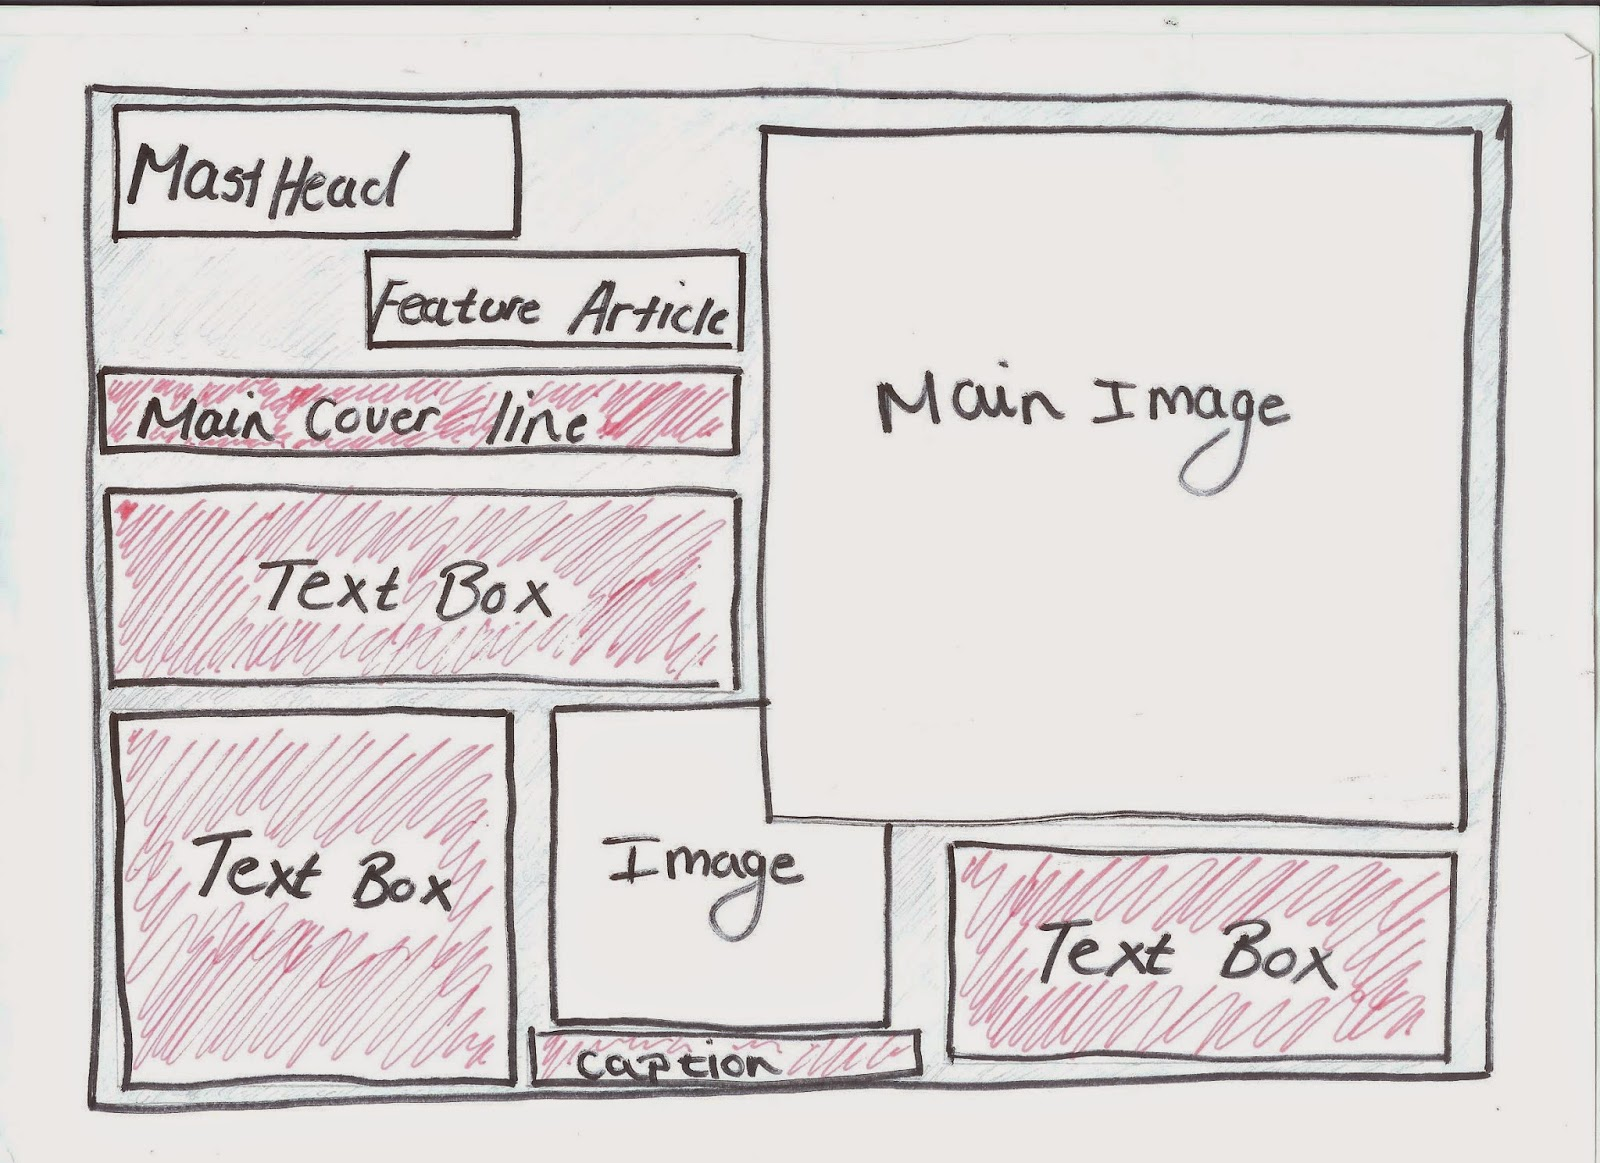 Feature Article Layout Example Drawn